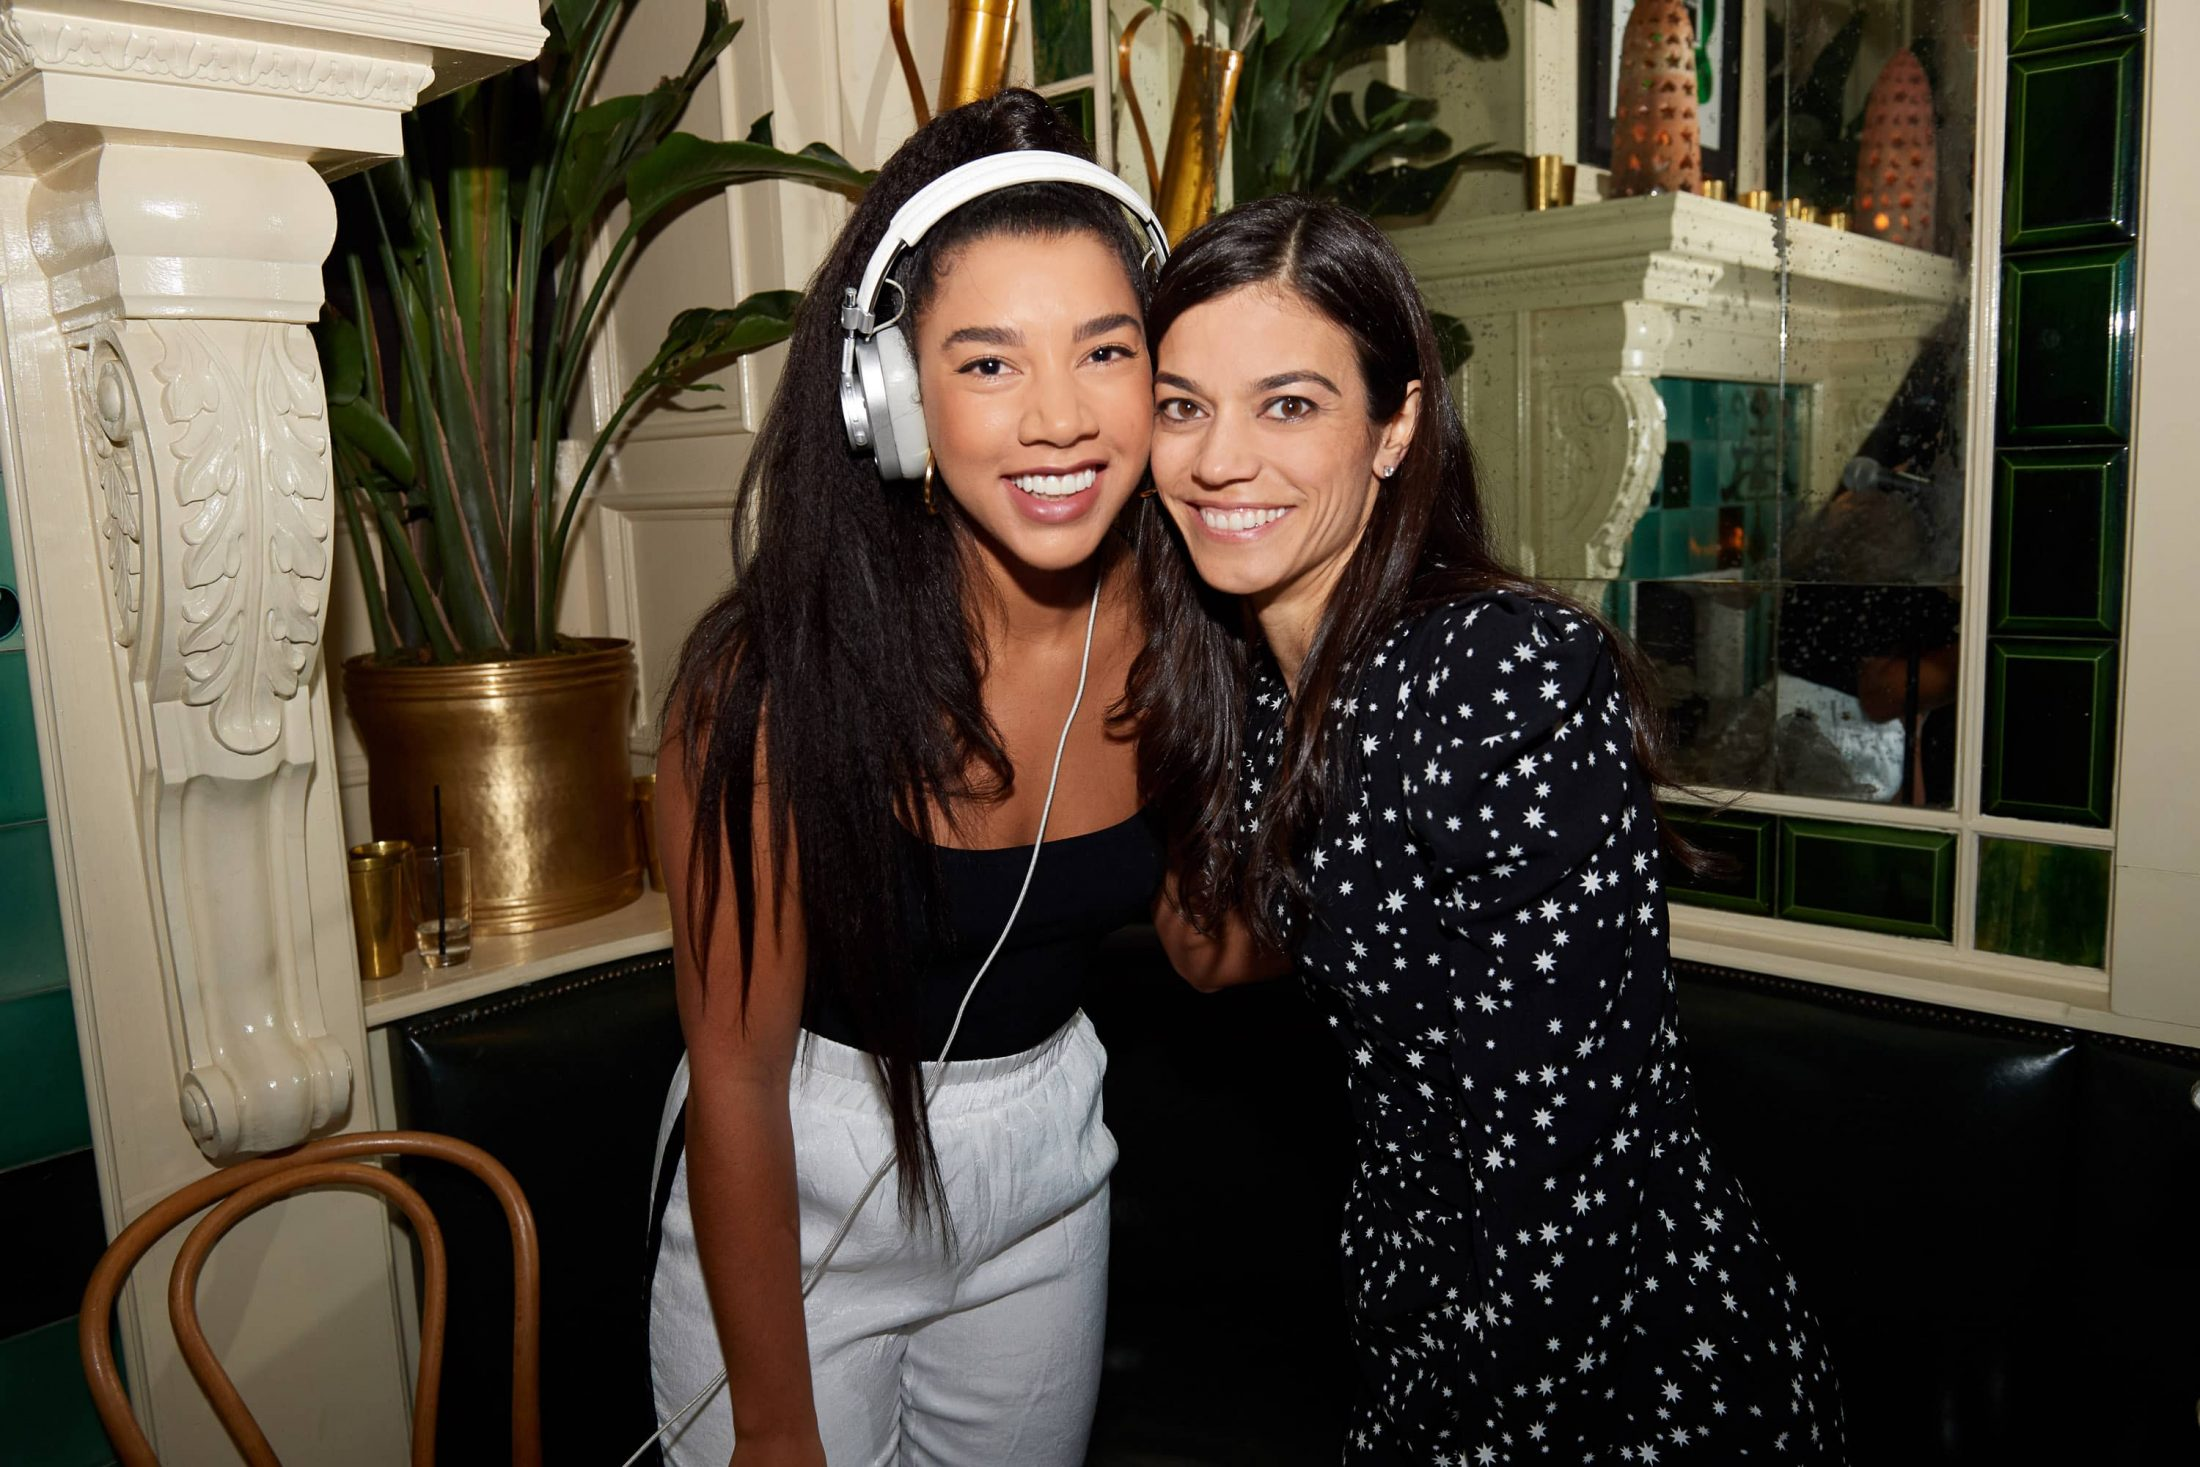 DJ Hannah Bronfman and Margaret at this 40th surprise birthday party at Beatrice Inn in West Village | Photo by Darren Ornitz